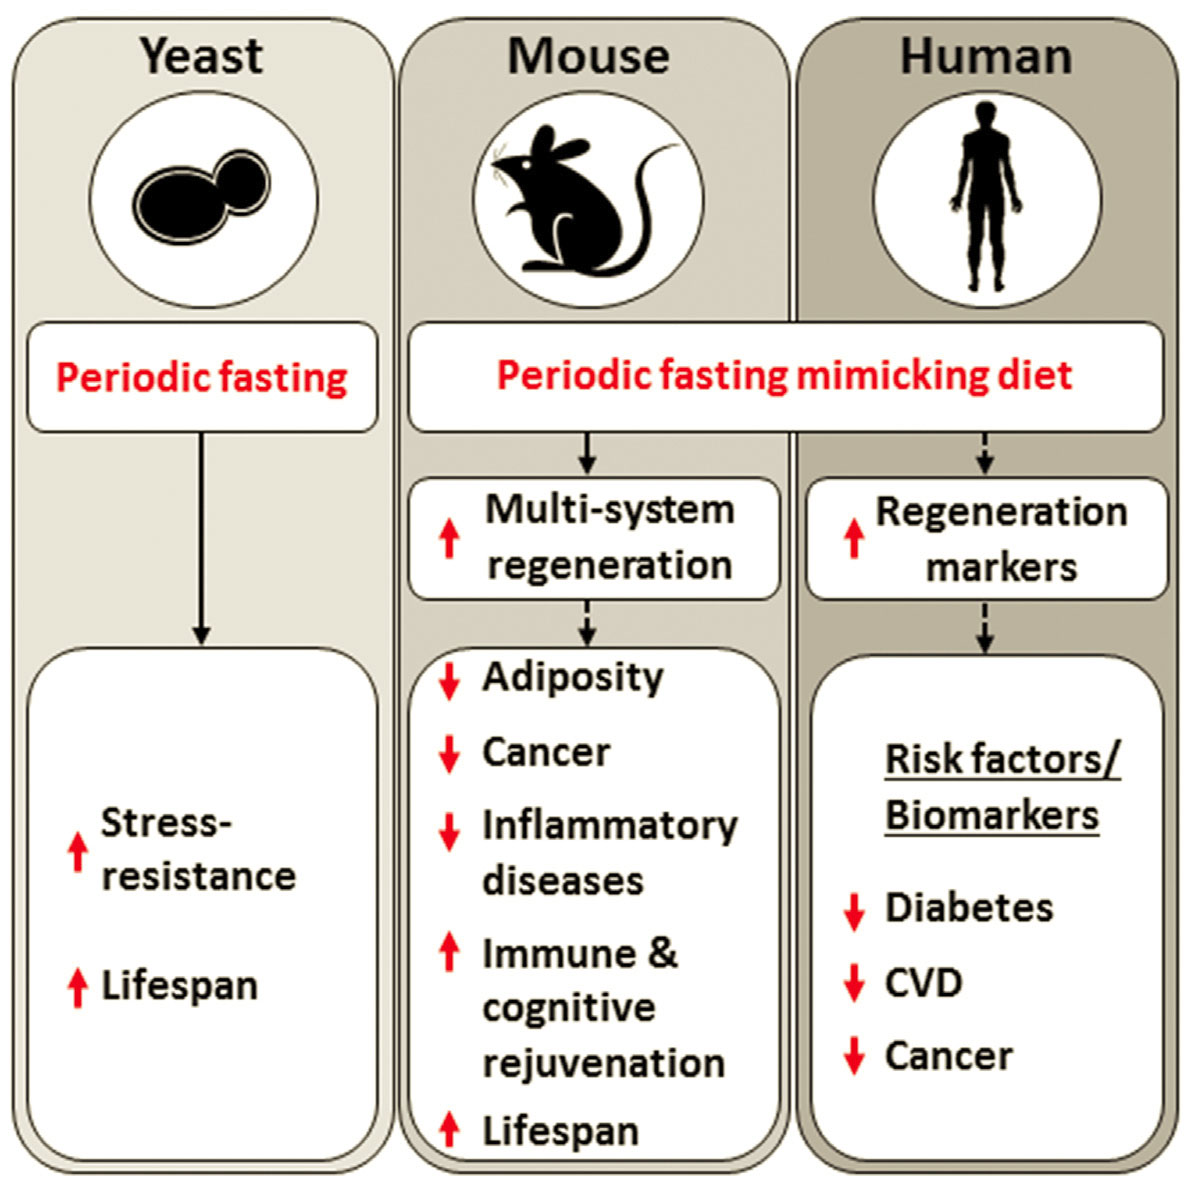 Diet that mimics fasting appears to slow aging